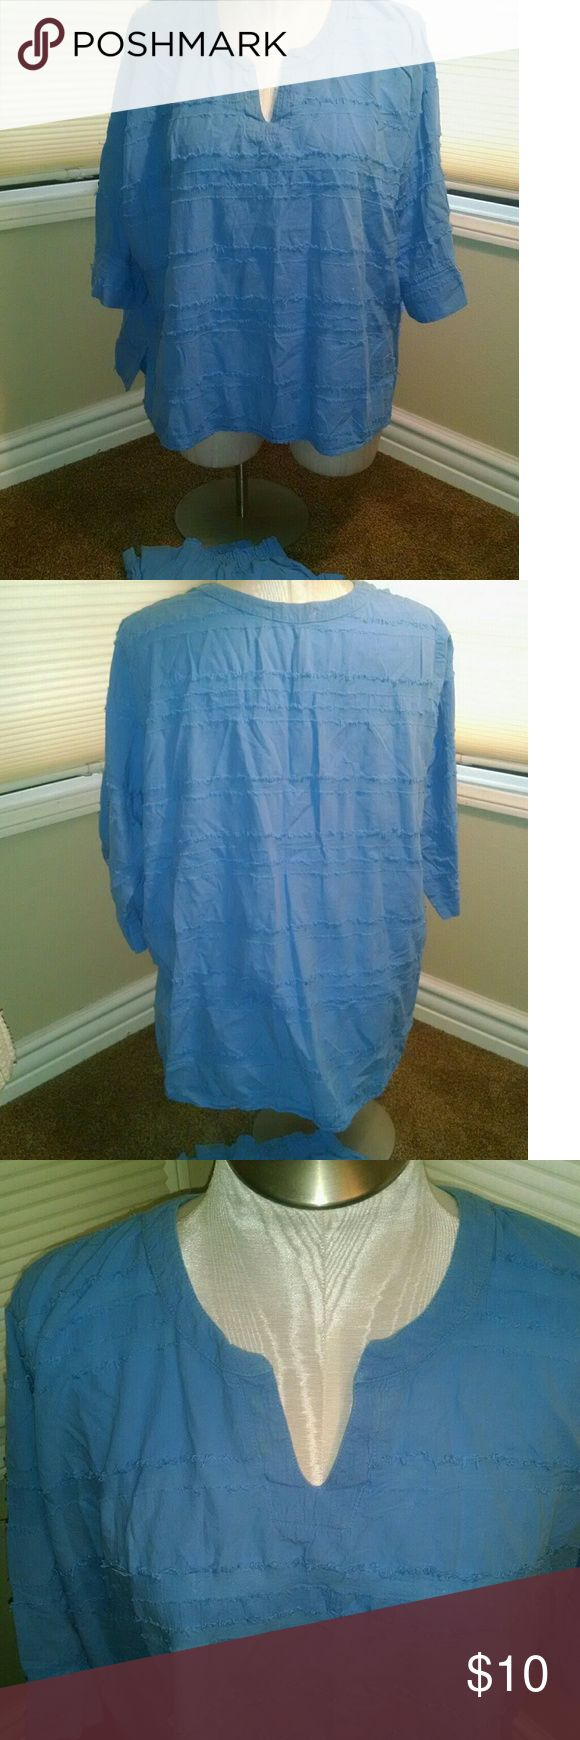 casual blue two piece outfit 1X Pants have elastic waist,  3X roomy pullover top Produce Co Tops